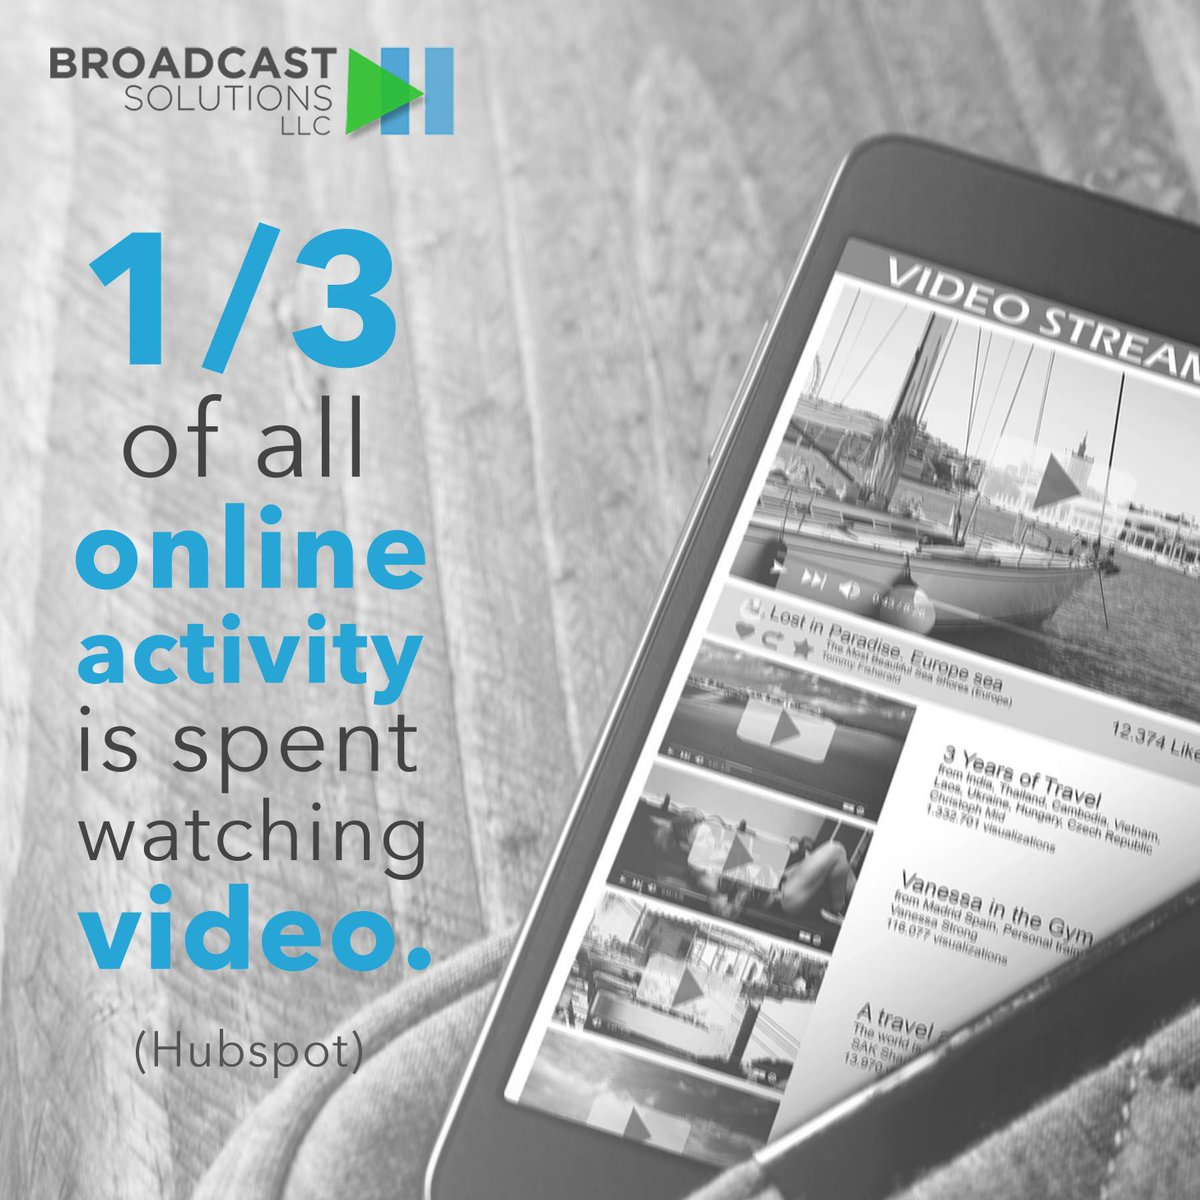 And, that's expected to continue to increase over the next few years! #WednesdayWisdom #videomarketing <br>http://pic.twitter.com/6d6kMVxA6y